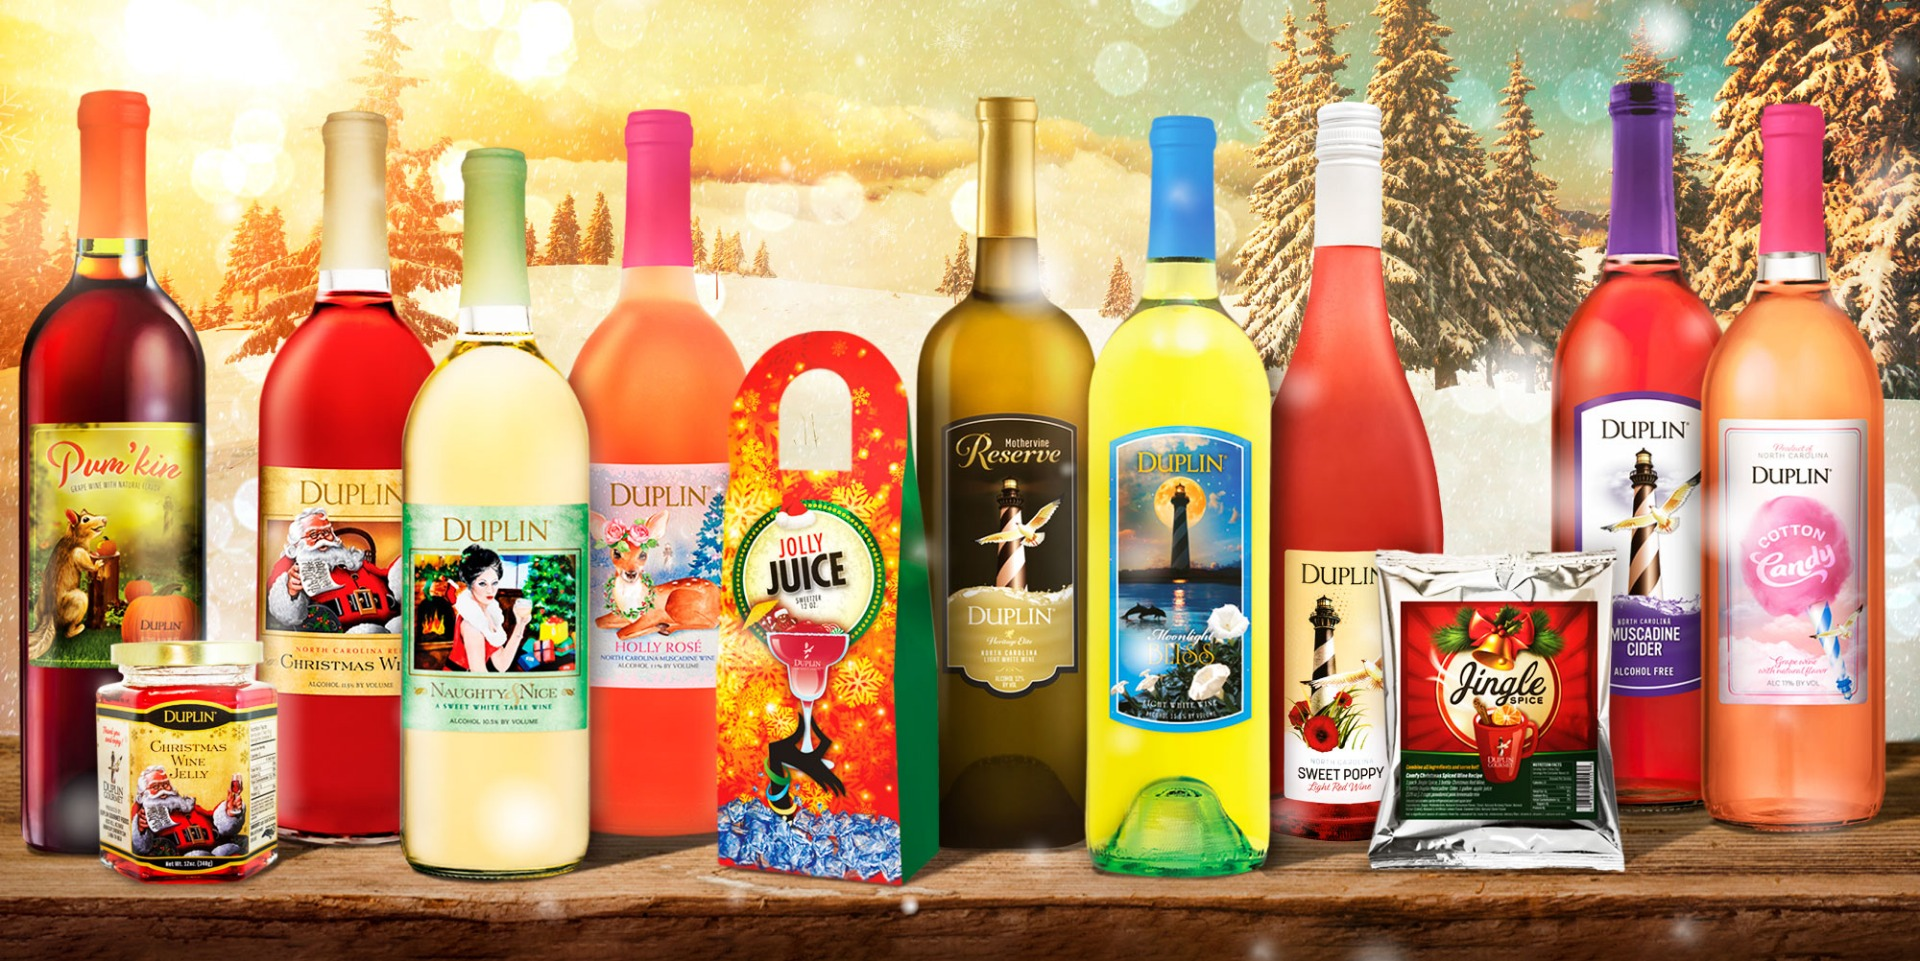 Host a wine festival at home with this collect of Duplin's best new wines of 2021.